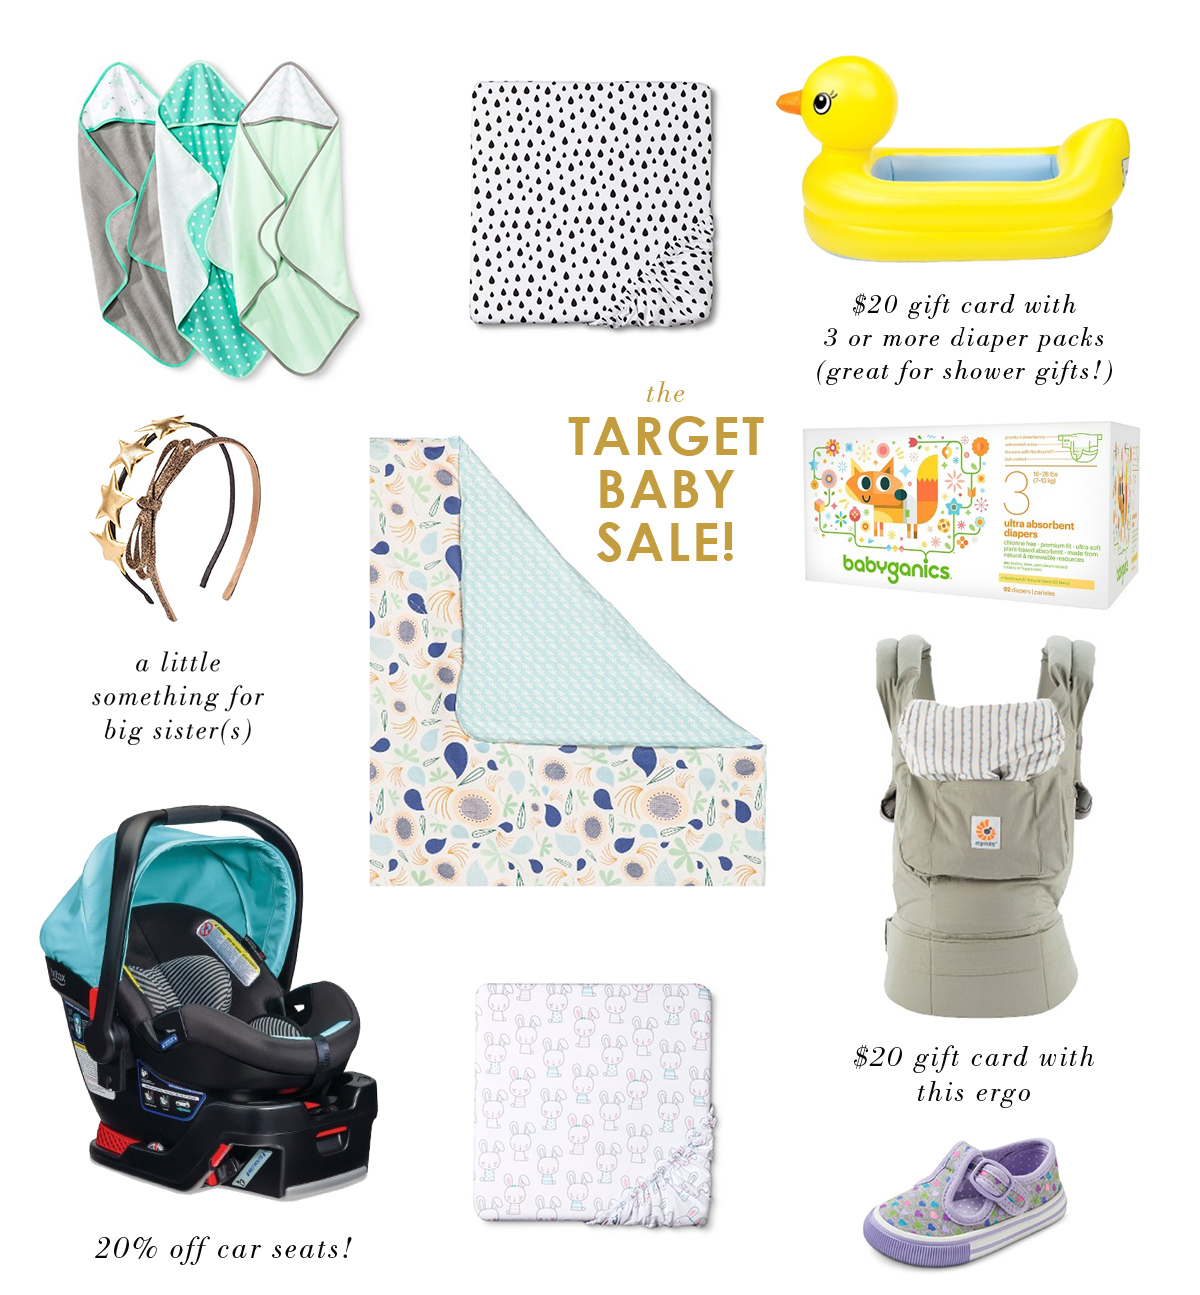 Target is having another baby sale! With discounts such as 20% off car seats, a $20 gift card with the purchase of 3 diaper packs (so perfect for a shower gift!), and 20% off .